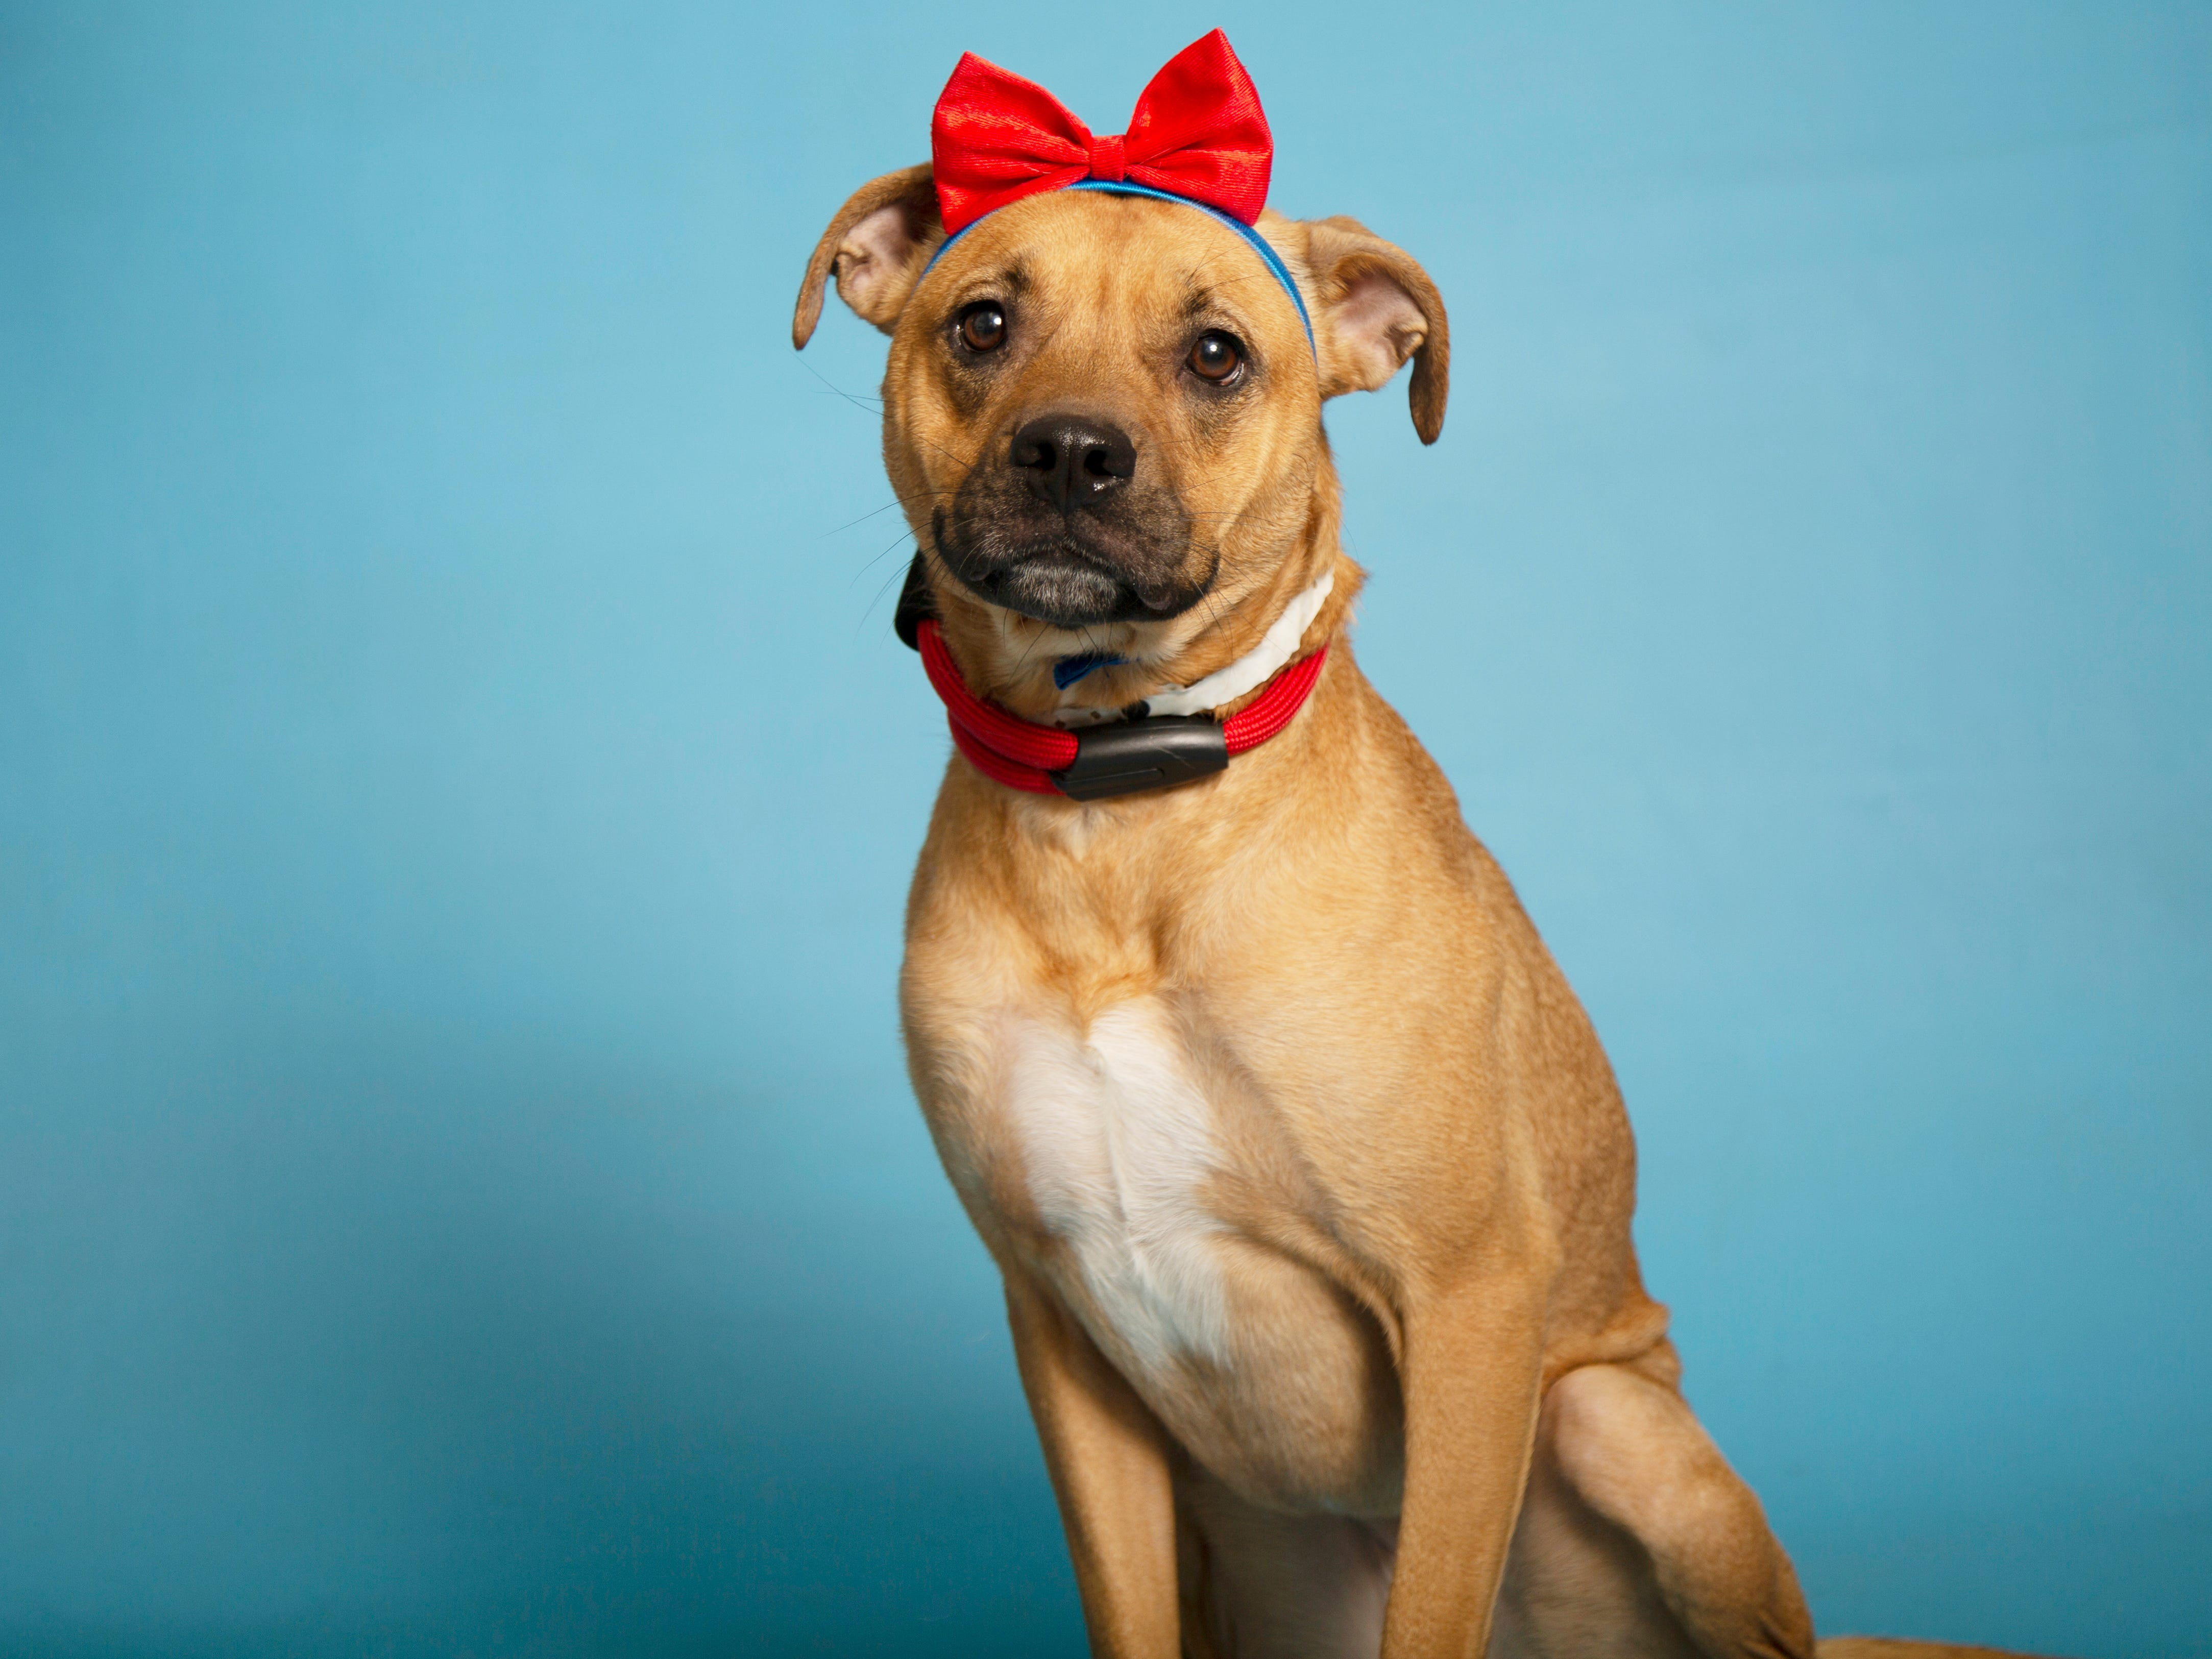 Tamara is available for adoption at 9226 N. 13th Ave. in Phoenix. For more information, visit azhumane.org/adopt.